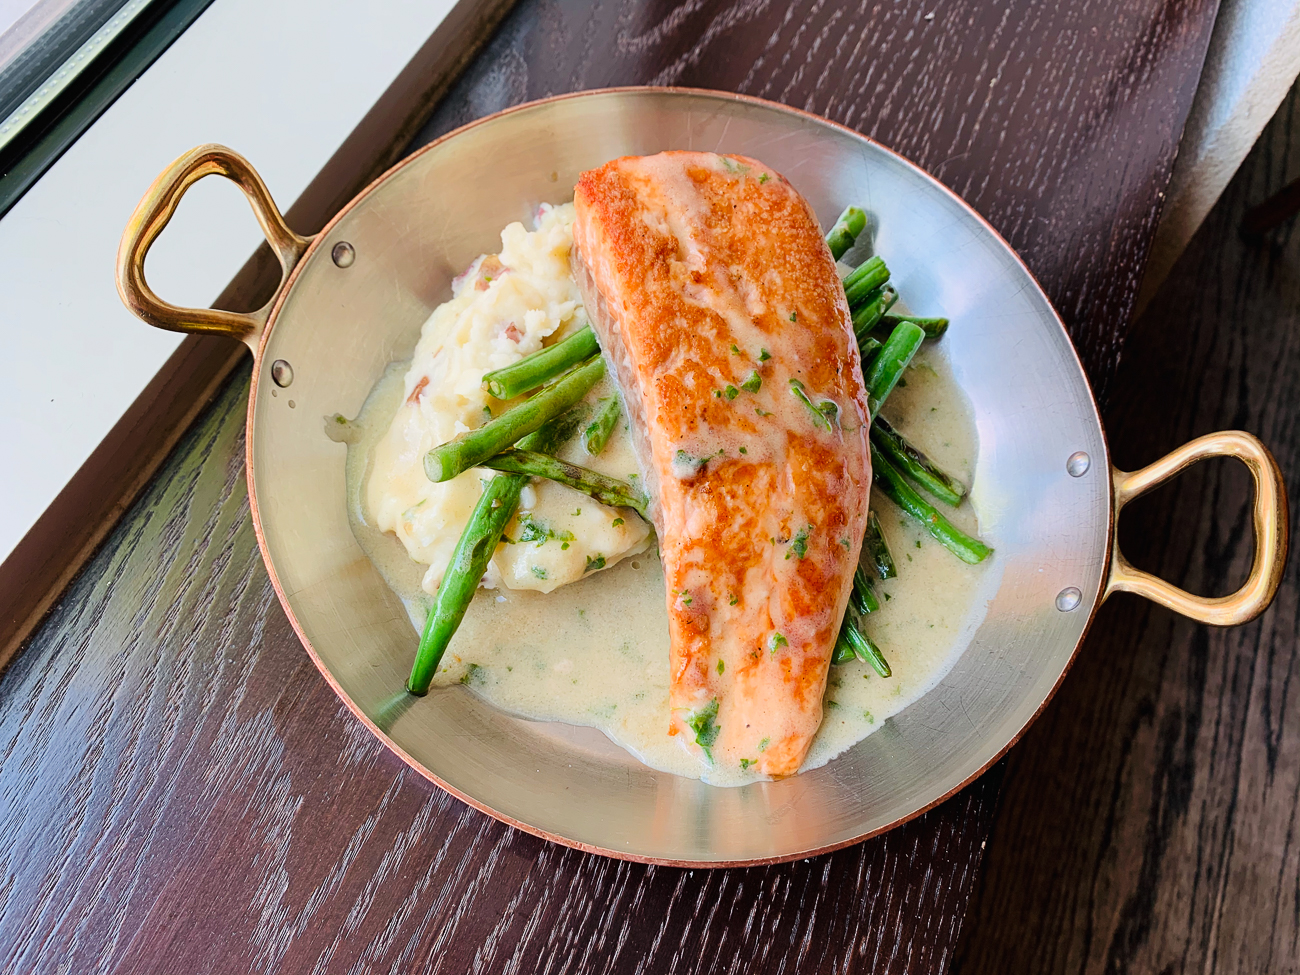 Salmon with{ }citrus beurre blanc, capers, mashed redskins, and haricots verts / Image courtesy of The Mercer OTR // Published: 5.14.20